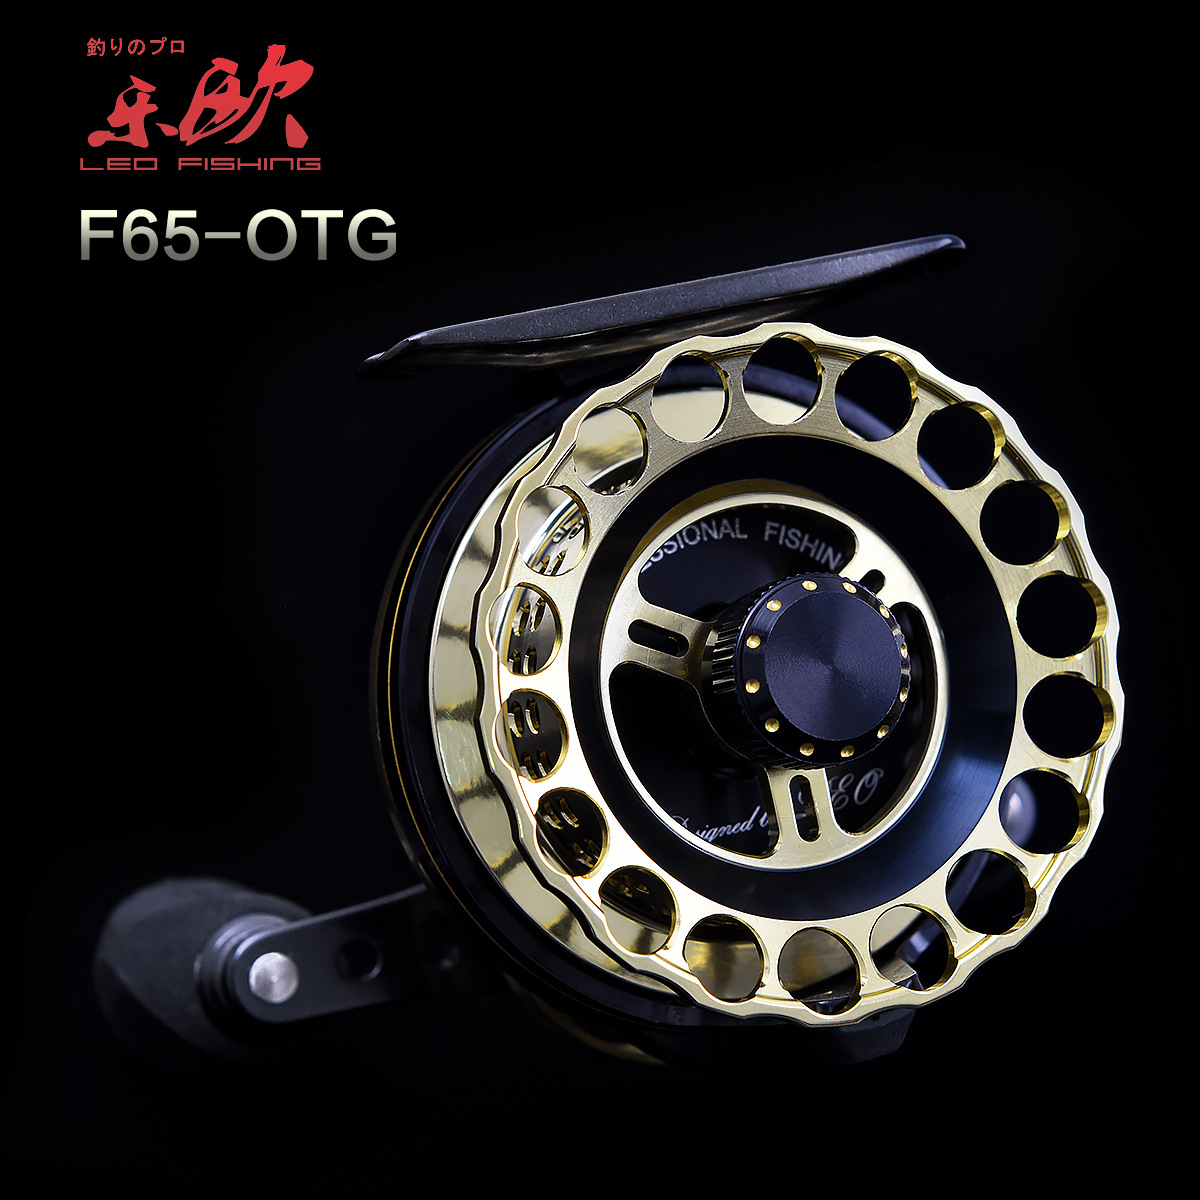 LEO Fishing reel 27510 F65-OTG all-metal wheel CNC 4.3:1 fishing micro-lead wheels base fishing gear raft reels pescaLEO Fishing reel 27510 F65-OTG all-metal wheel CNC 4.3:1 fishing micro-lead wheels base fishing gear raft reels pesca